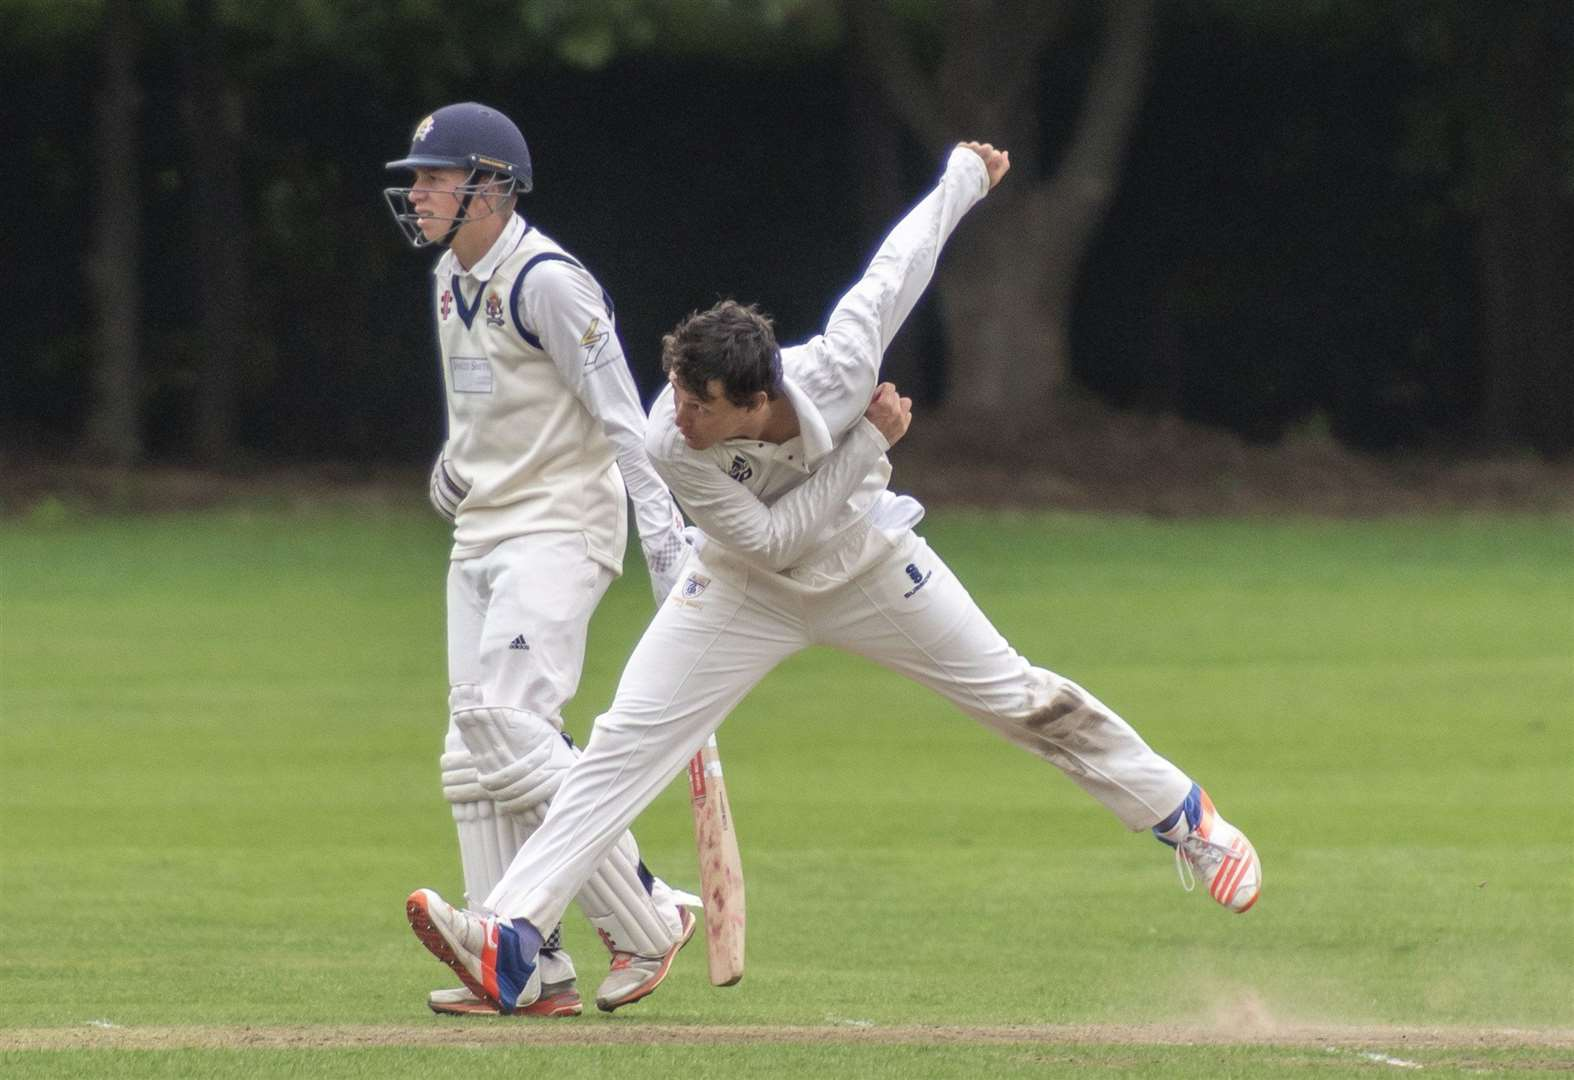 Cambridge miss out on Club Cricket Conference Inter-League Competition success with defeat to Bexley